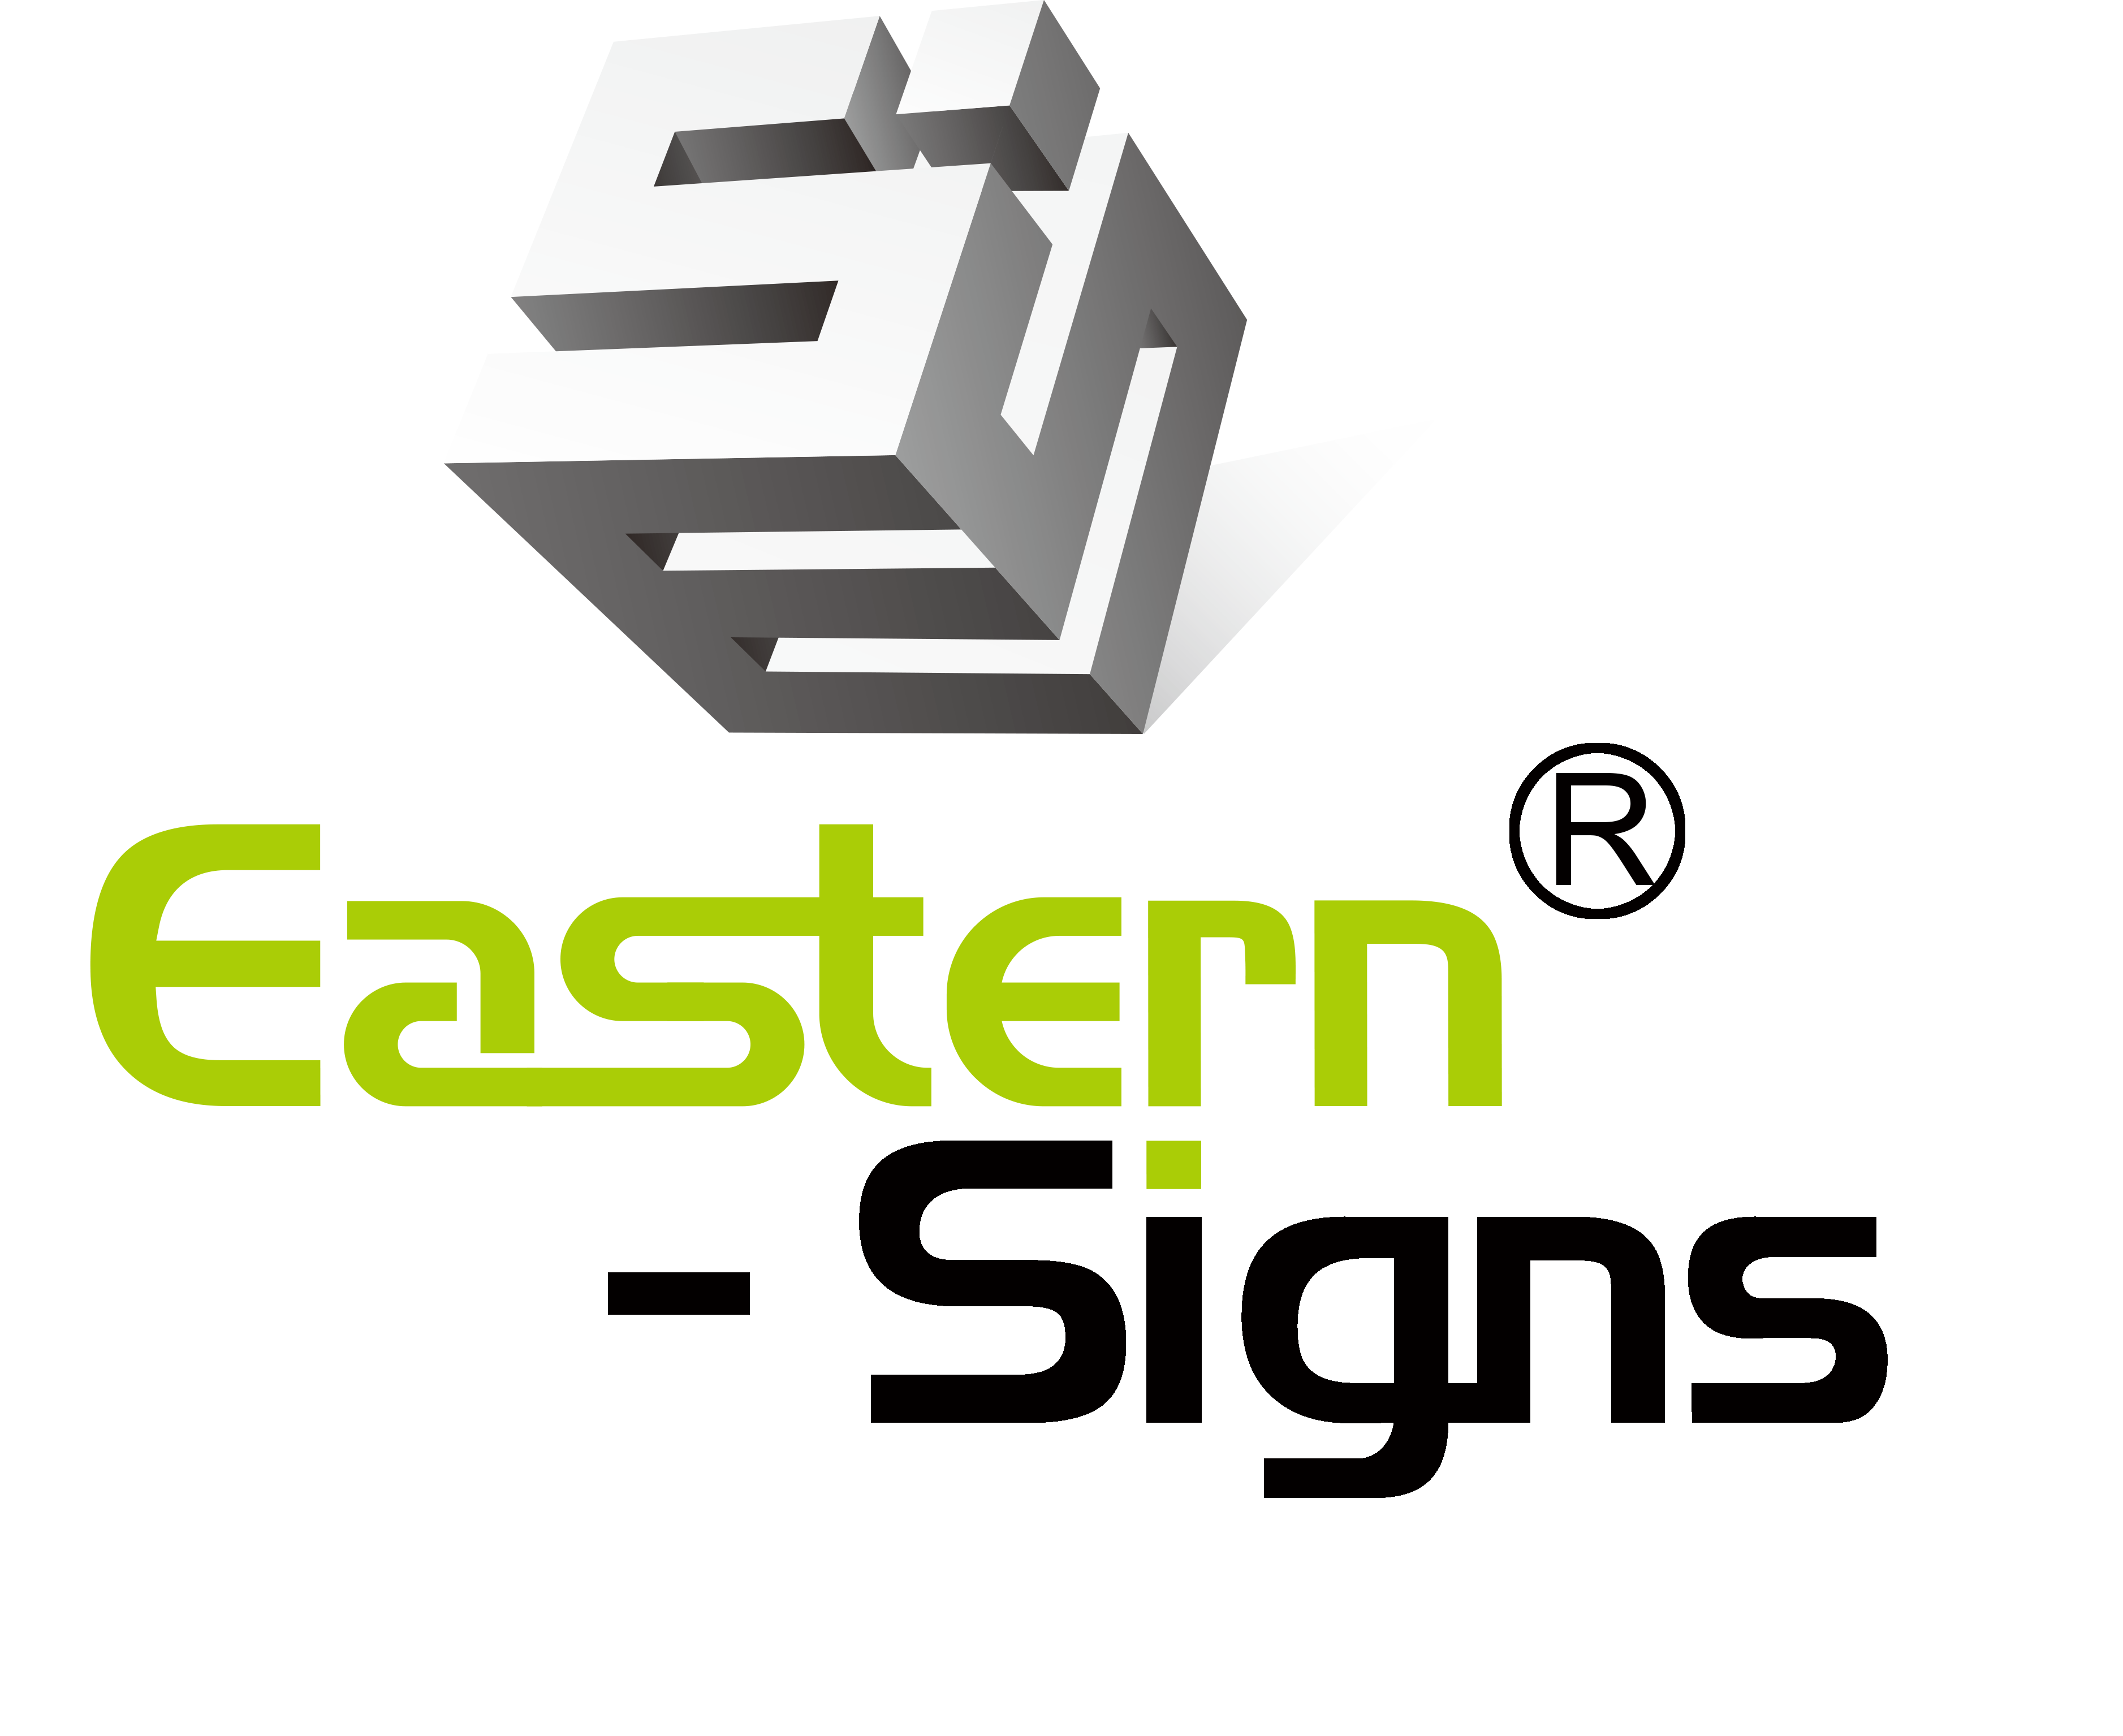 Eastern-Signs